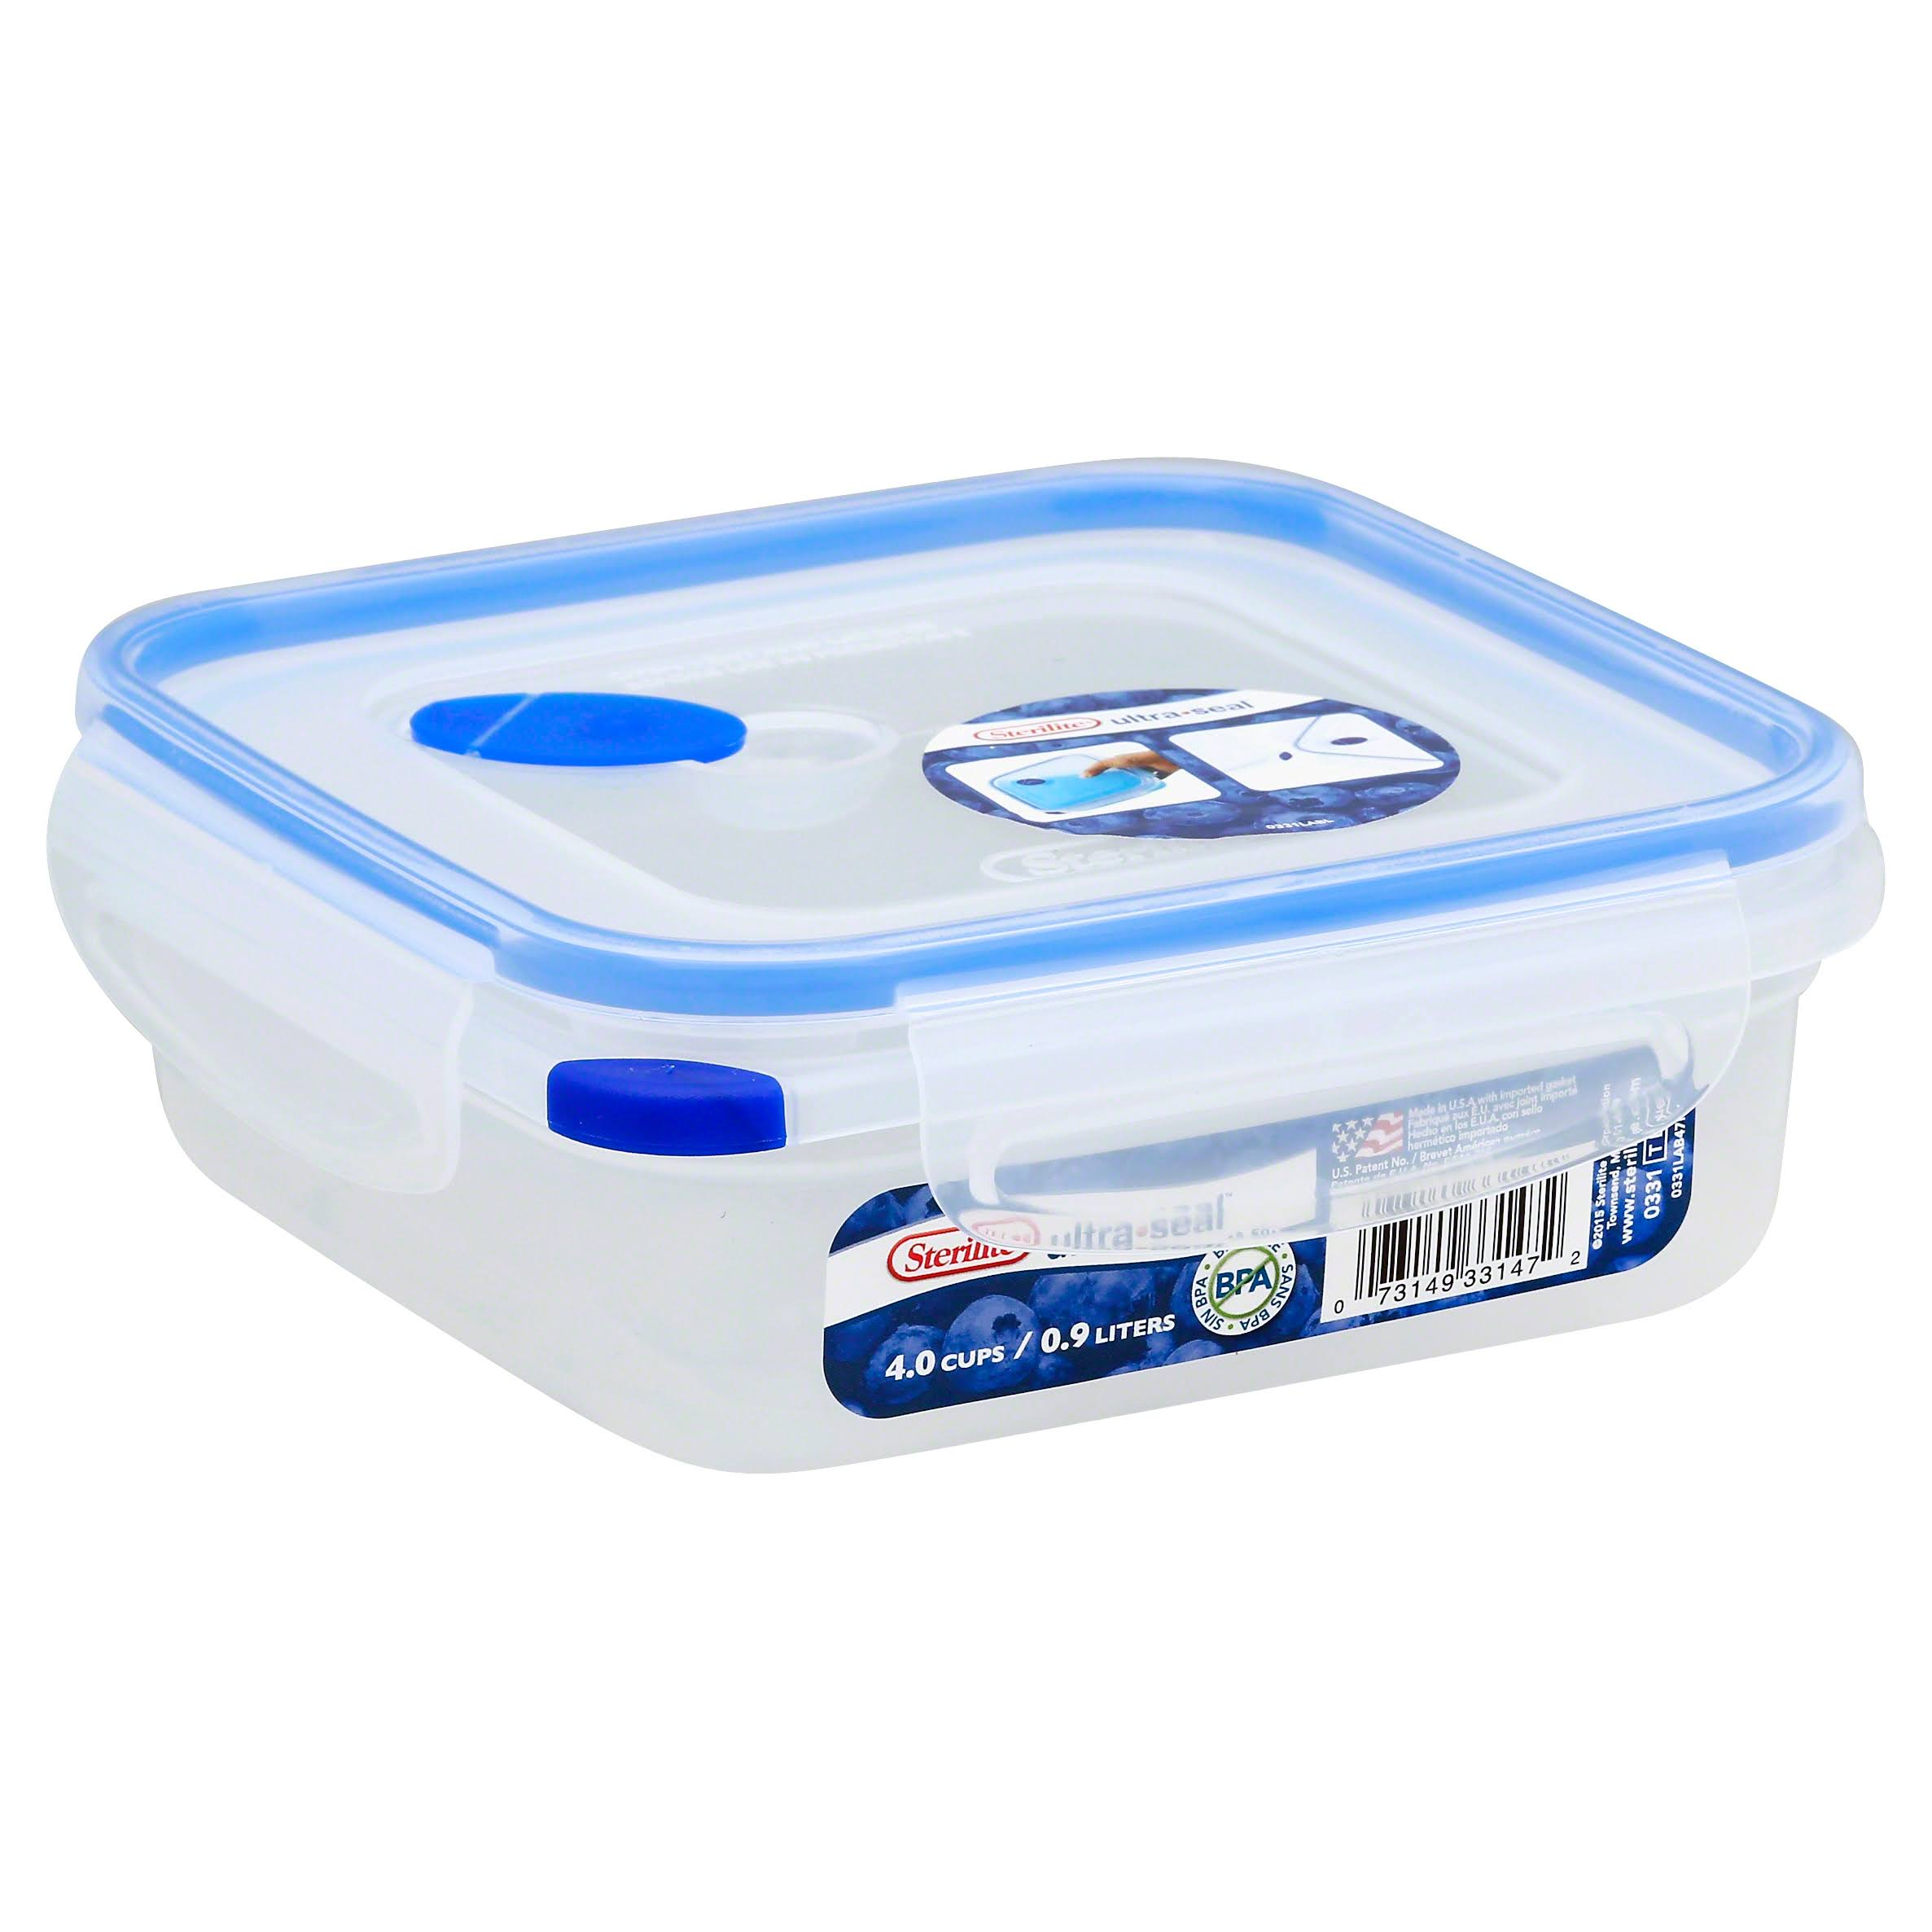 Sterilite 03314706 Square Container - 32oz